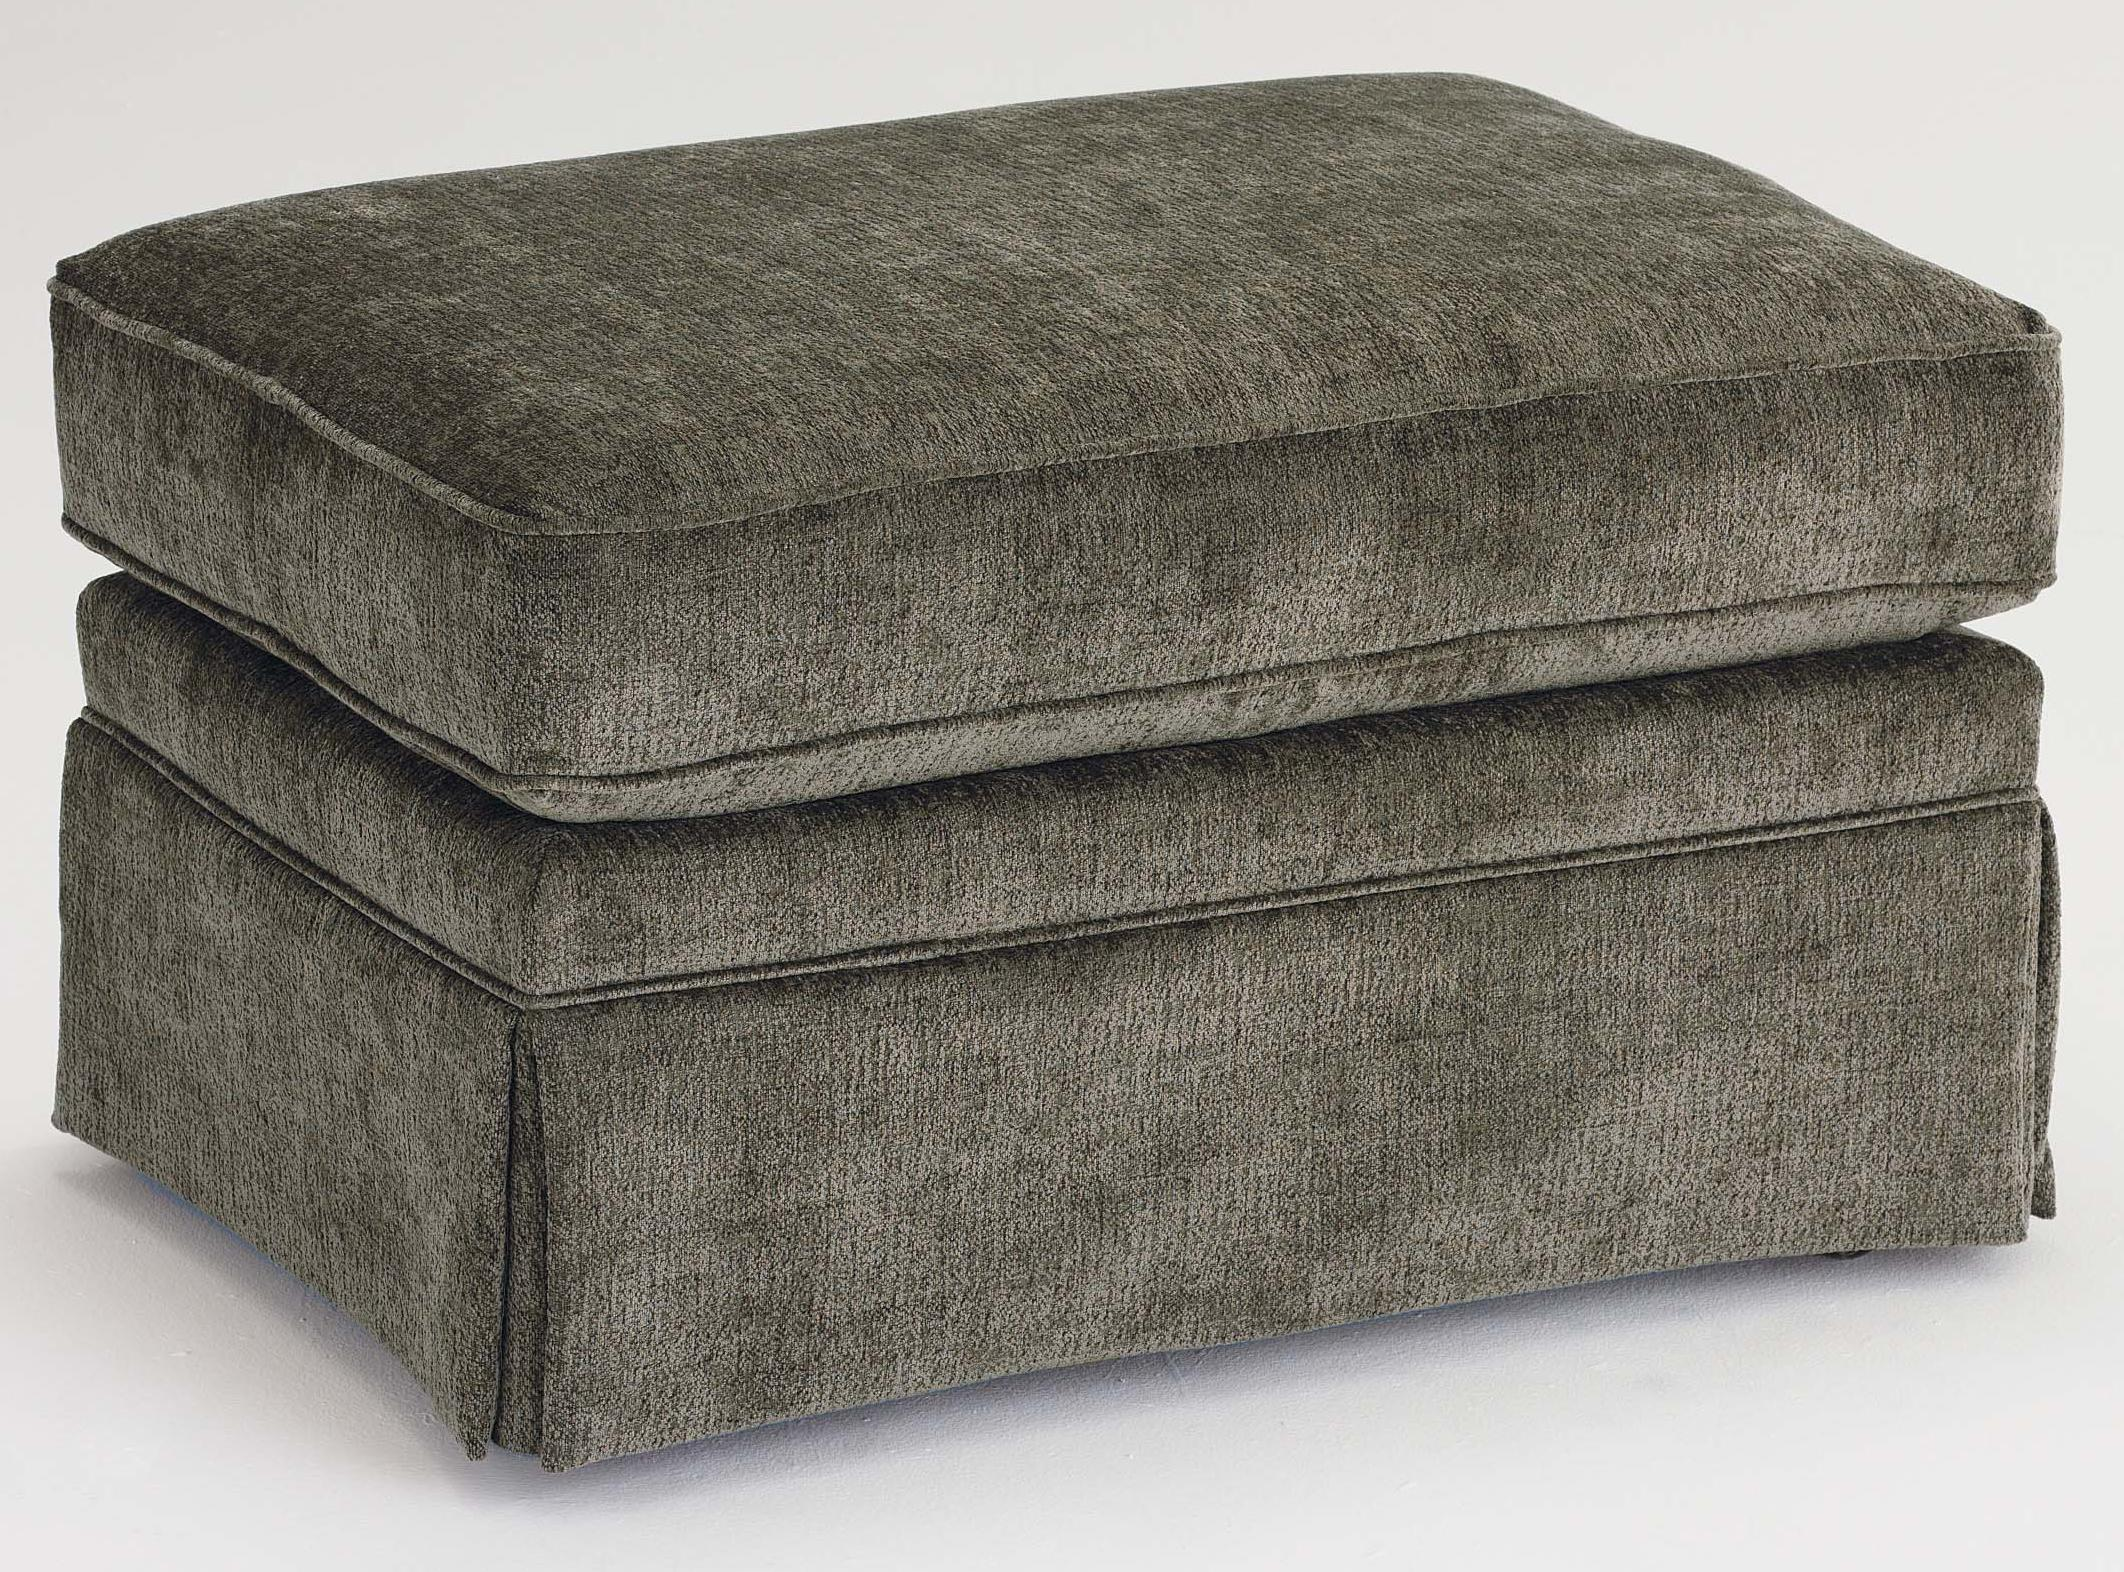 Best Home Furnishings Chairs - Accent Ottoman - Item Number: 0042